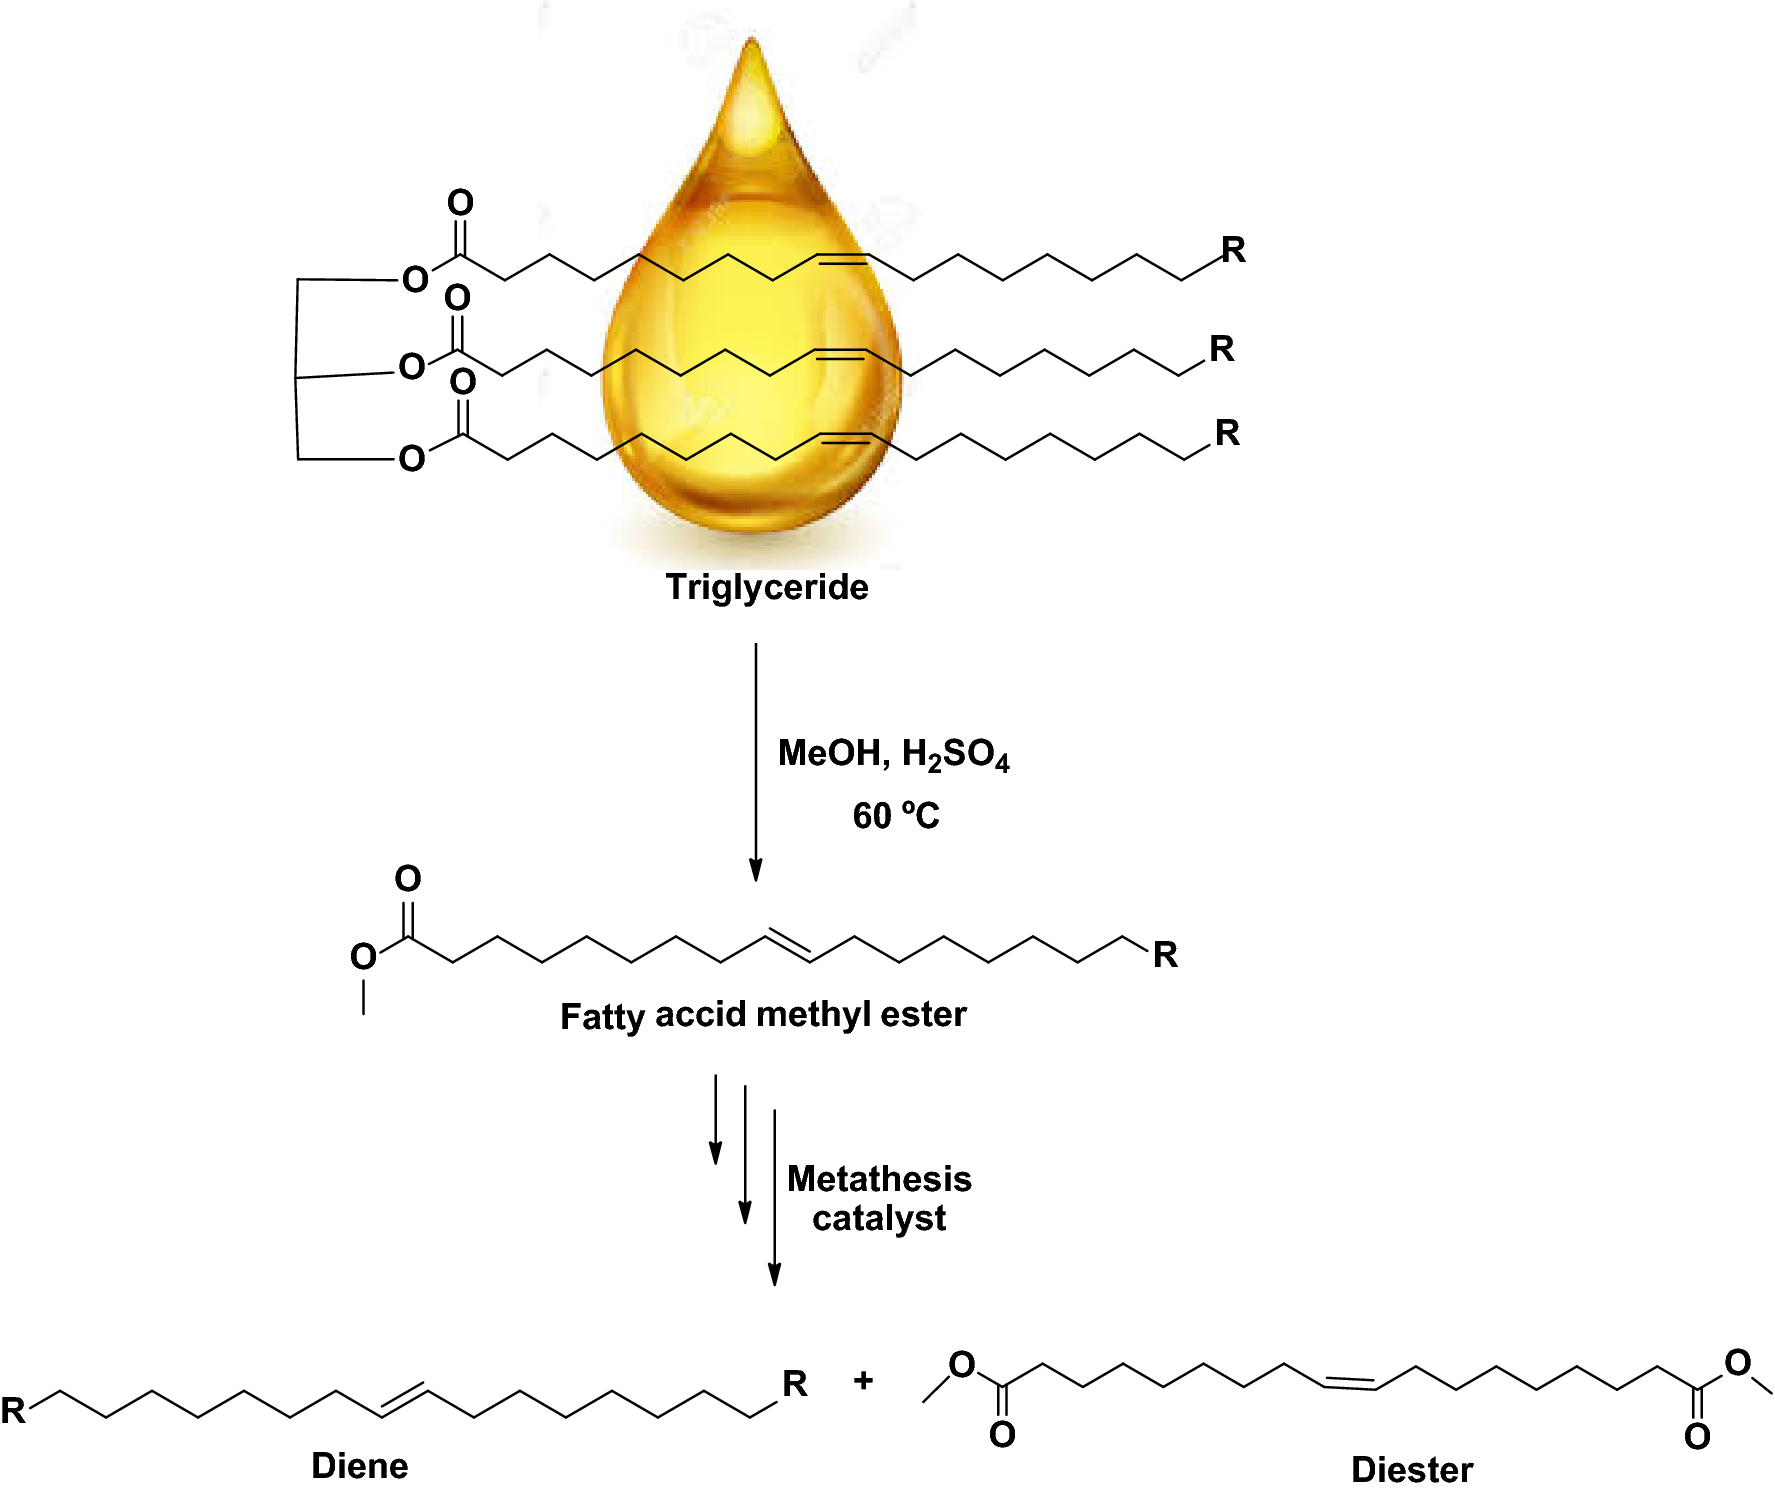 Olefin metathesis of fatty acids and vegetable oils